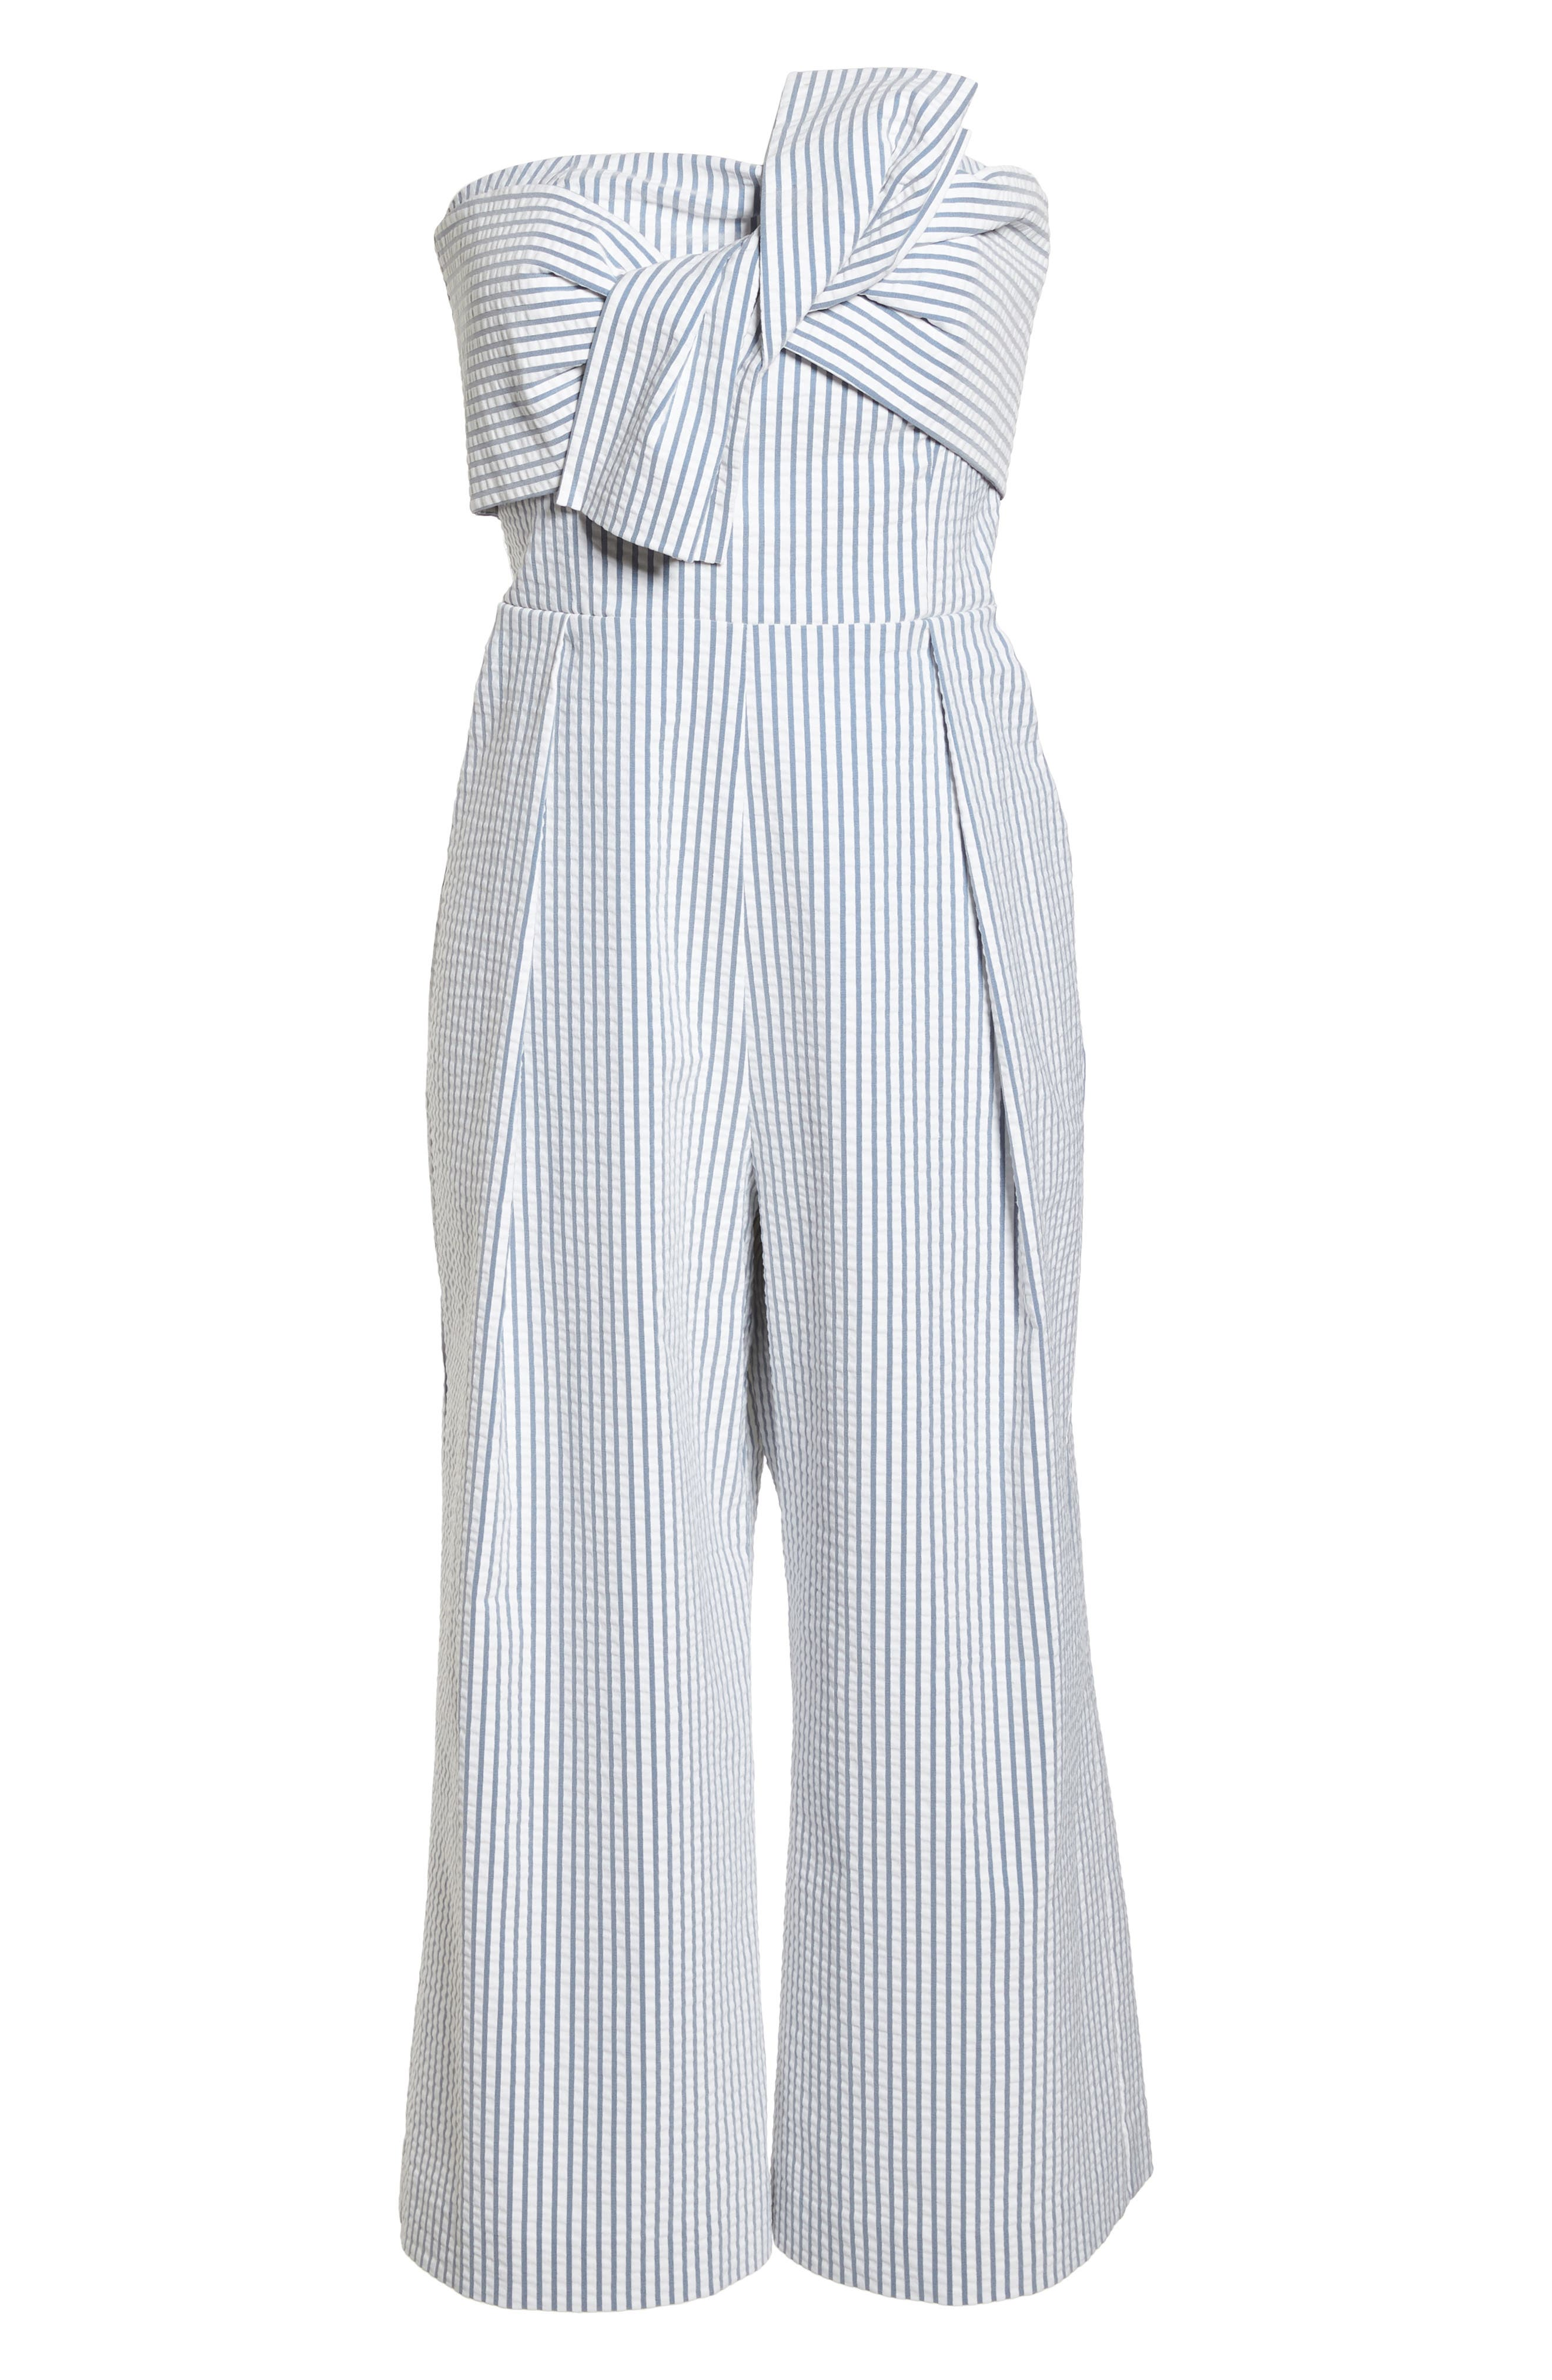 Twist Front Seersucker Crop Jumpsuit,                             Alternate thumbnail 7, color,                             BLUE/ WHITE STRIPE